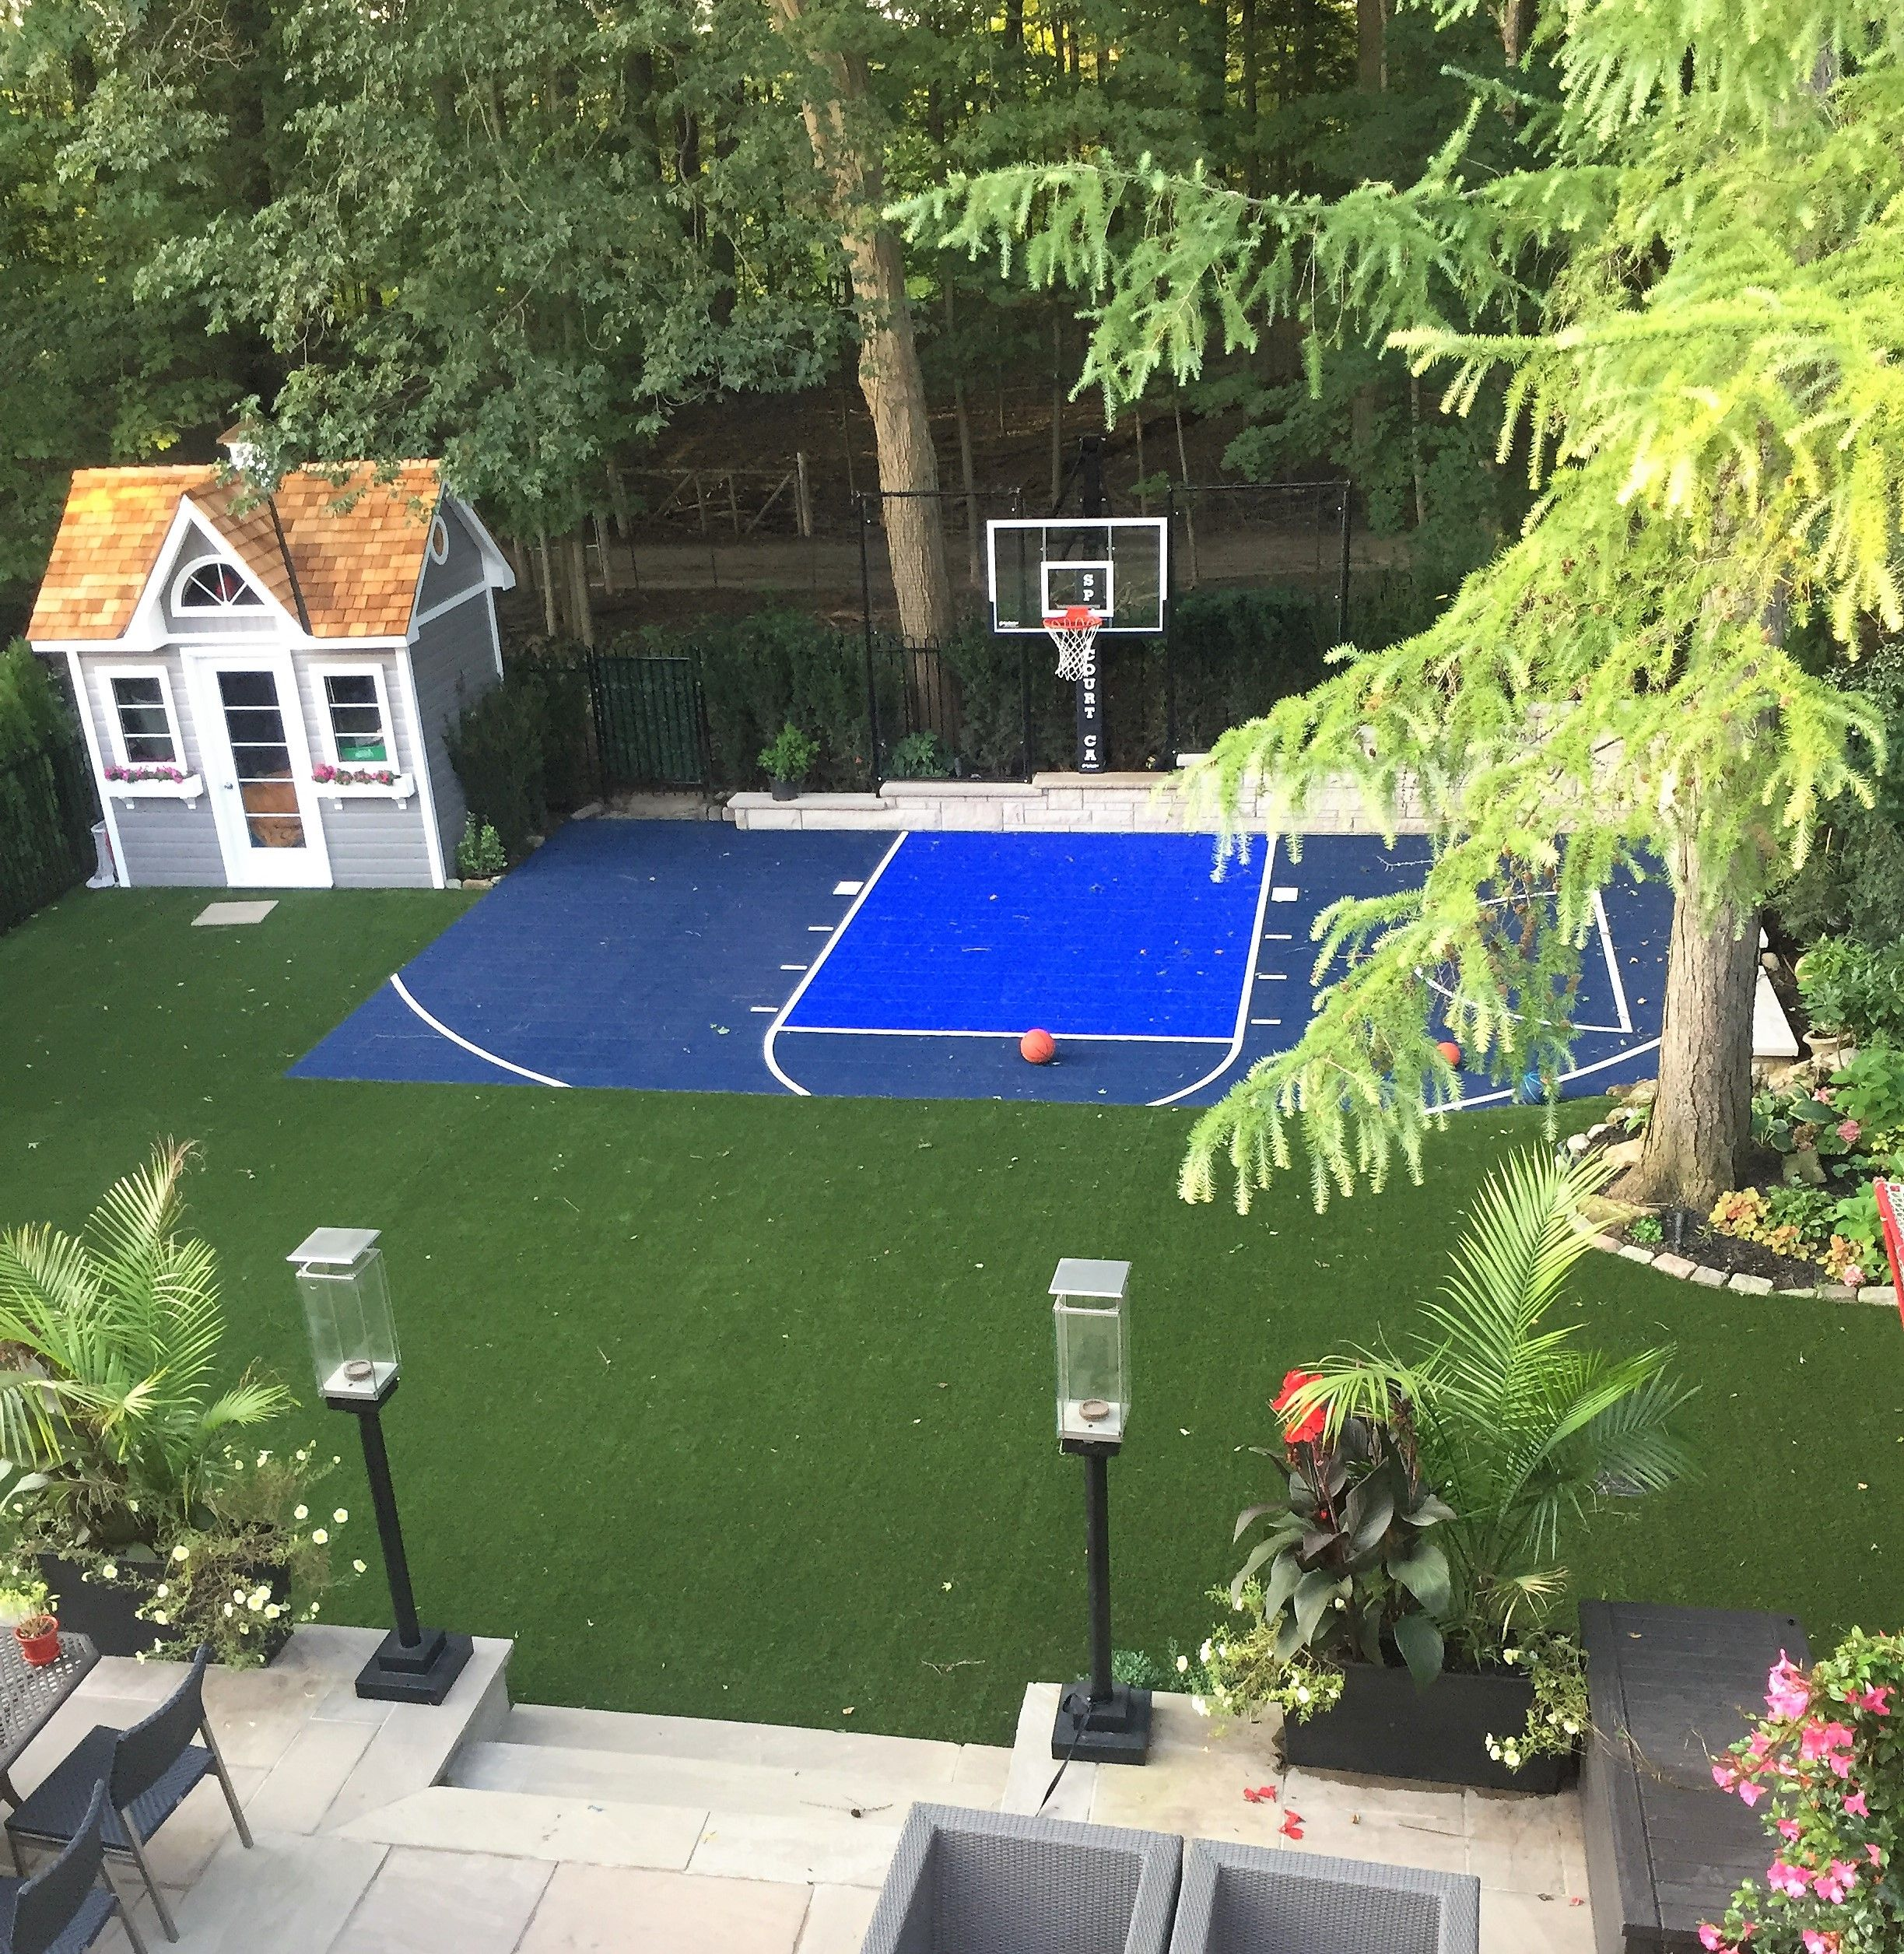 New Sports Court Shed And Full Turf Application Hockey Basketball And Soccer On The Turf Gas Torches Basketball Court Backyard Backyard Basketball Backyard Backyard landscaping ideas with basketball court